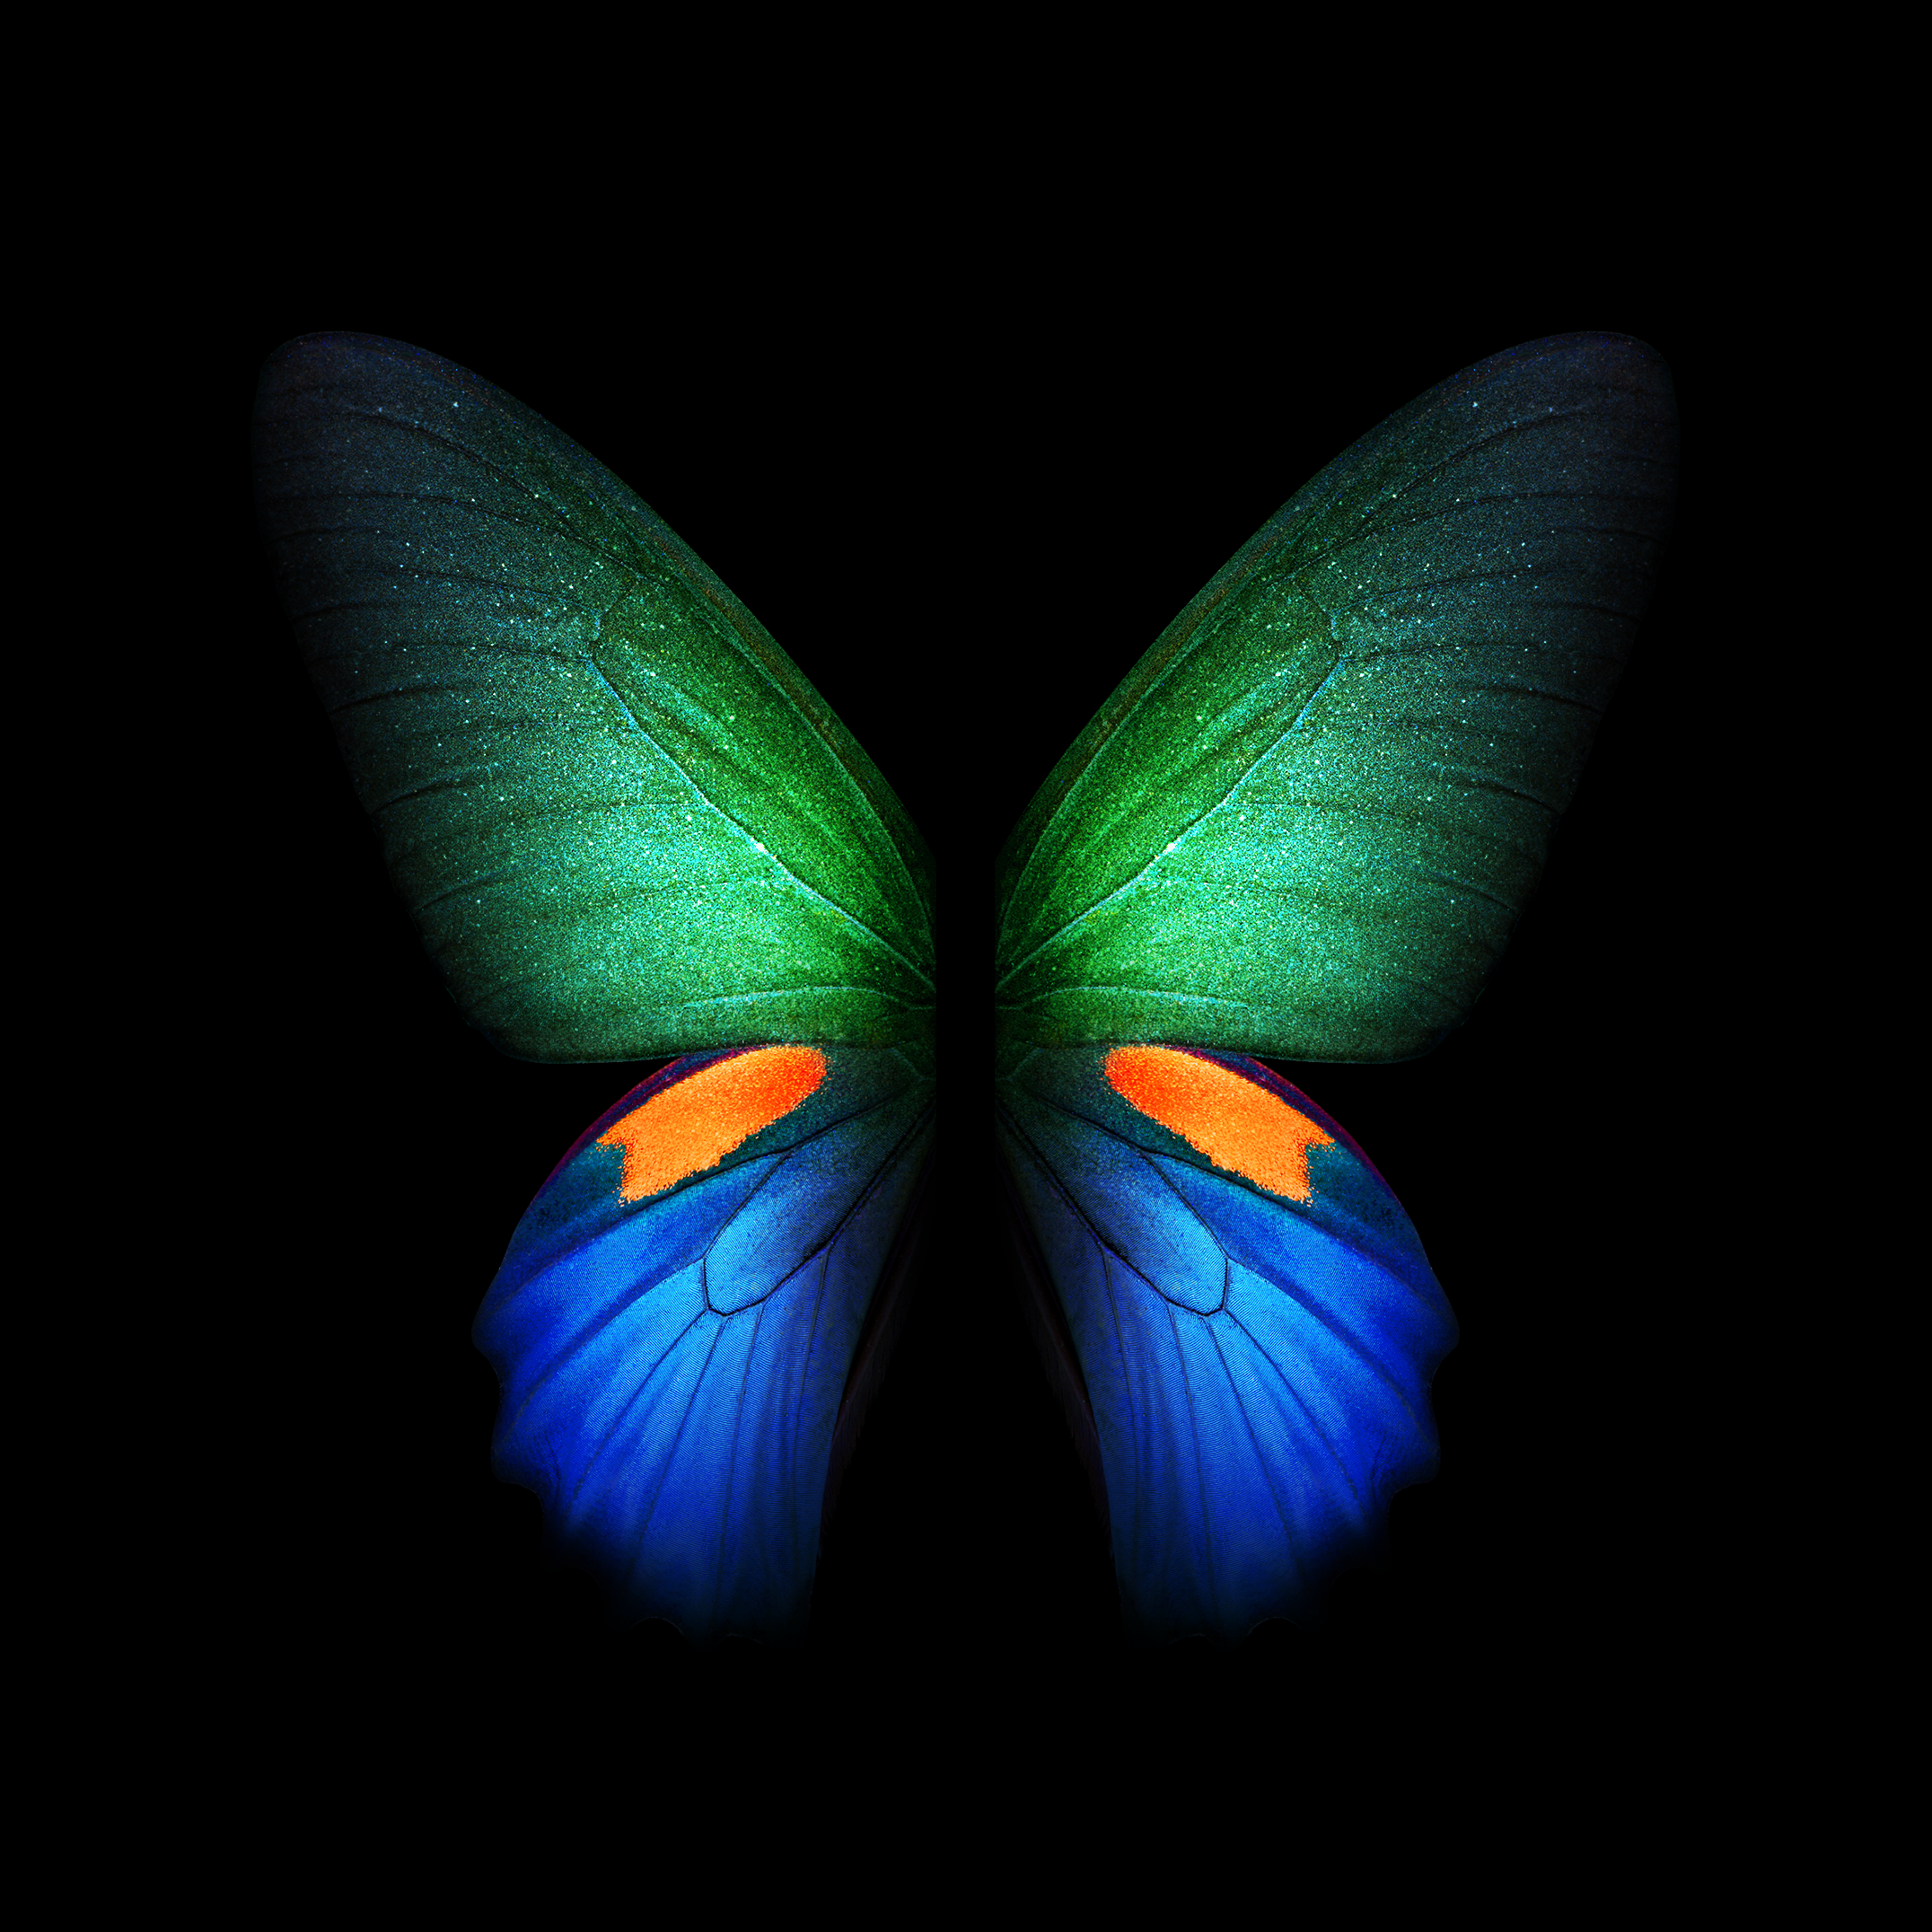 Samsung Galaxy Fold live and static wallpapers available for download 2152x2152